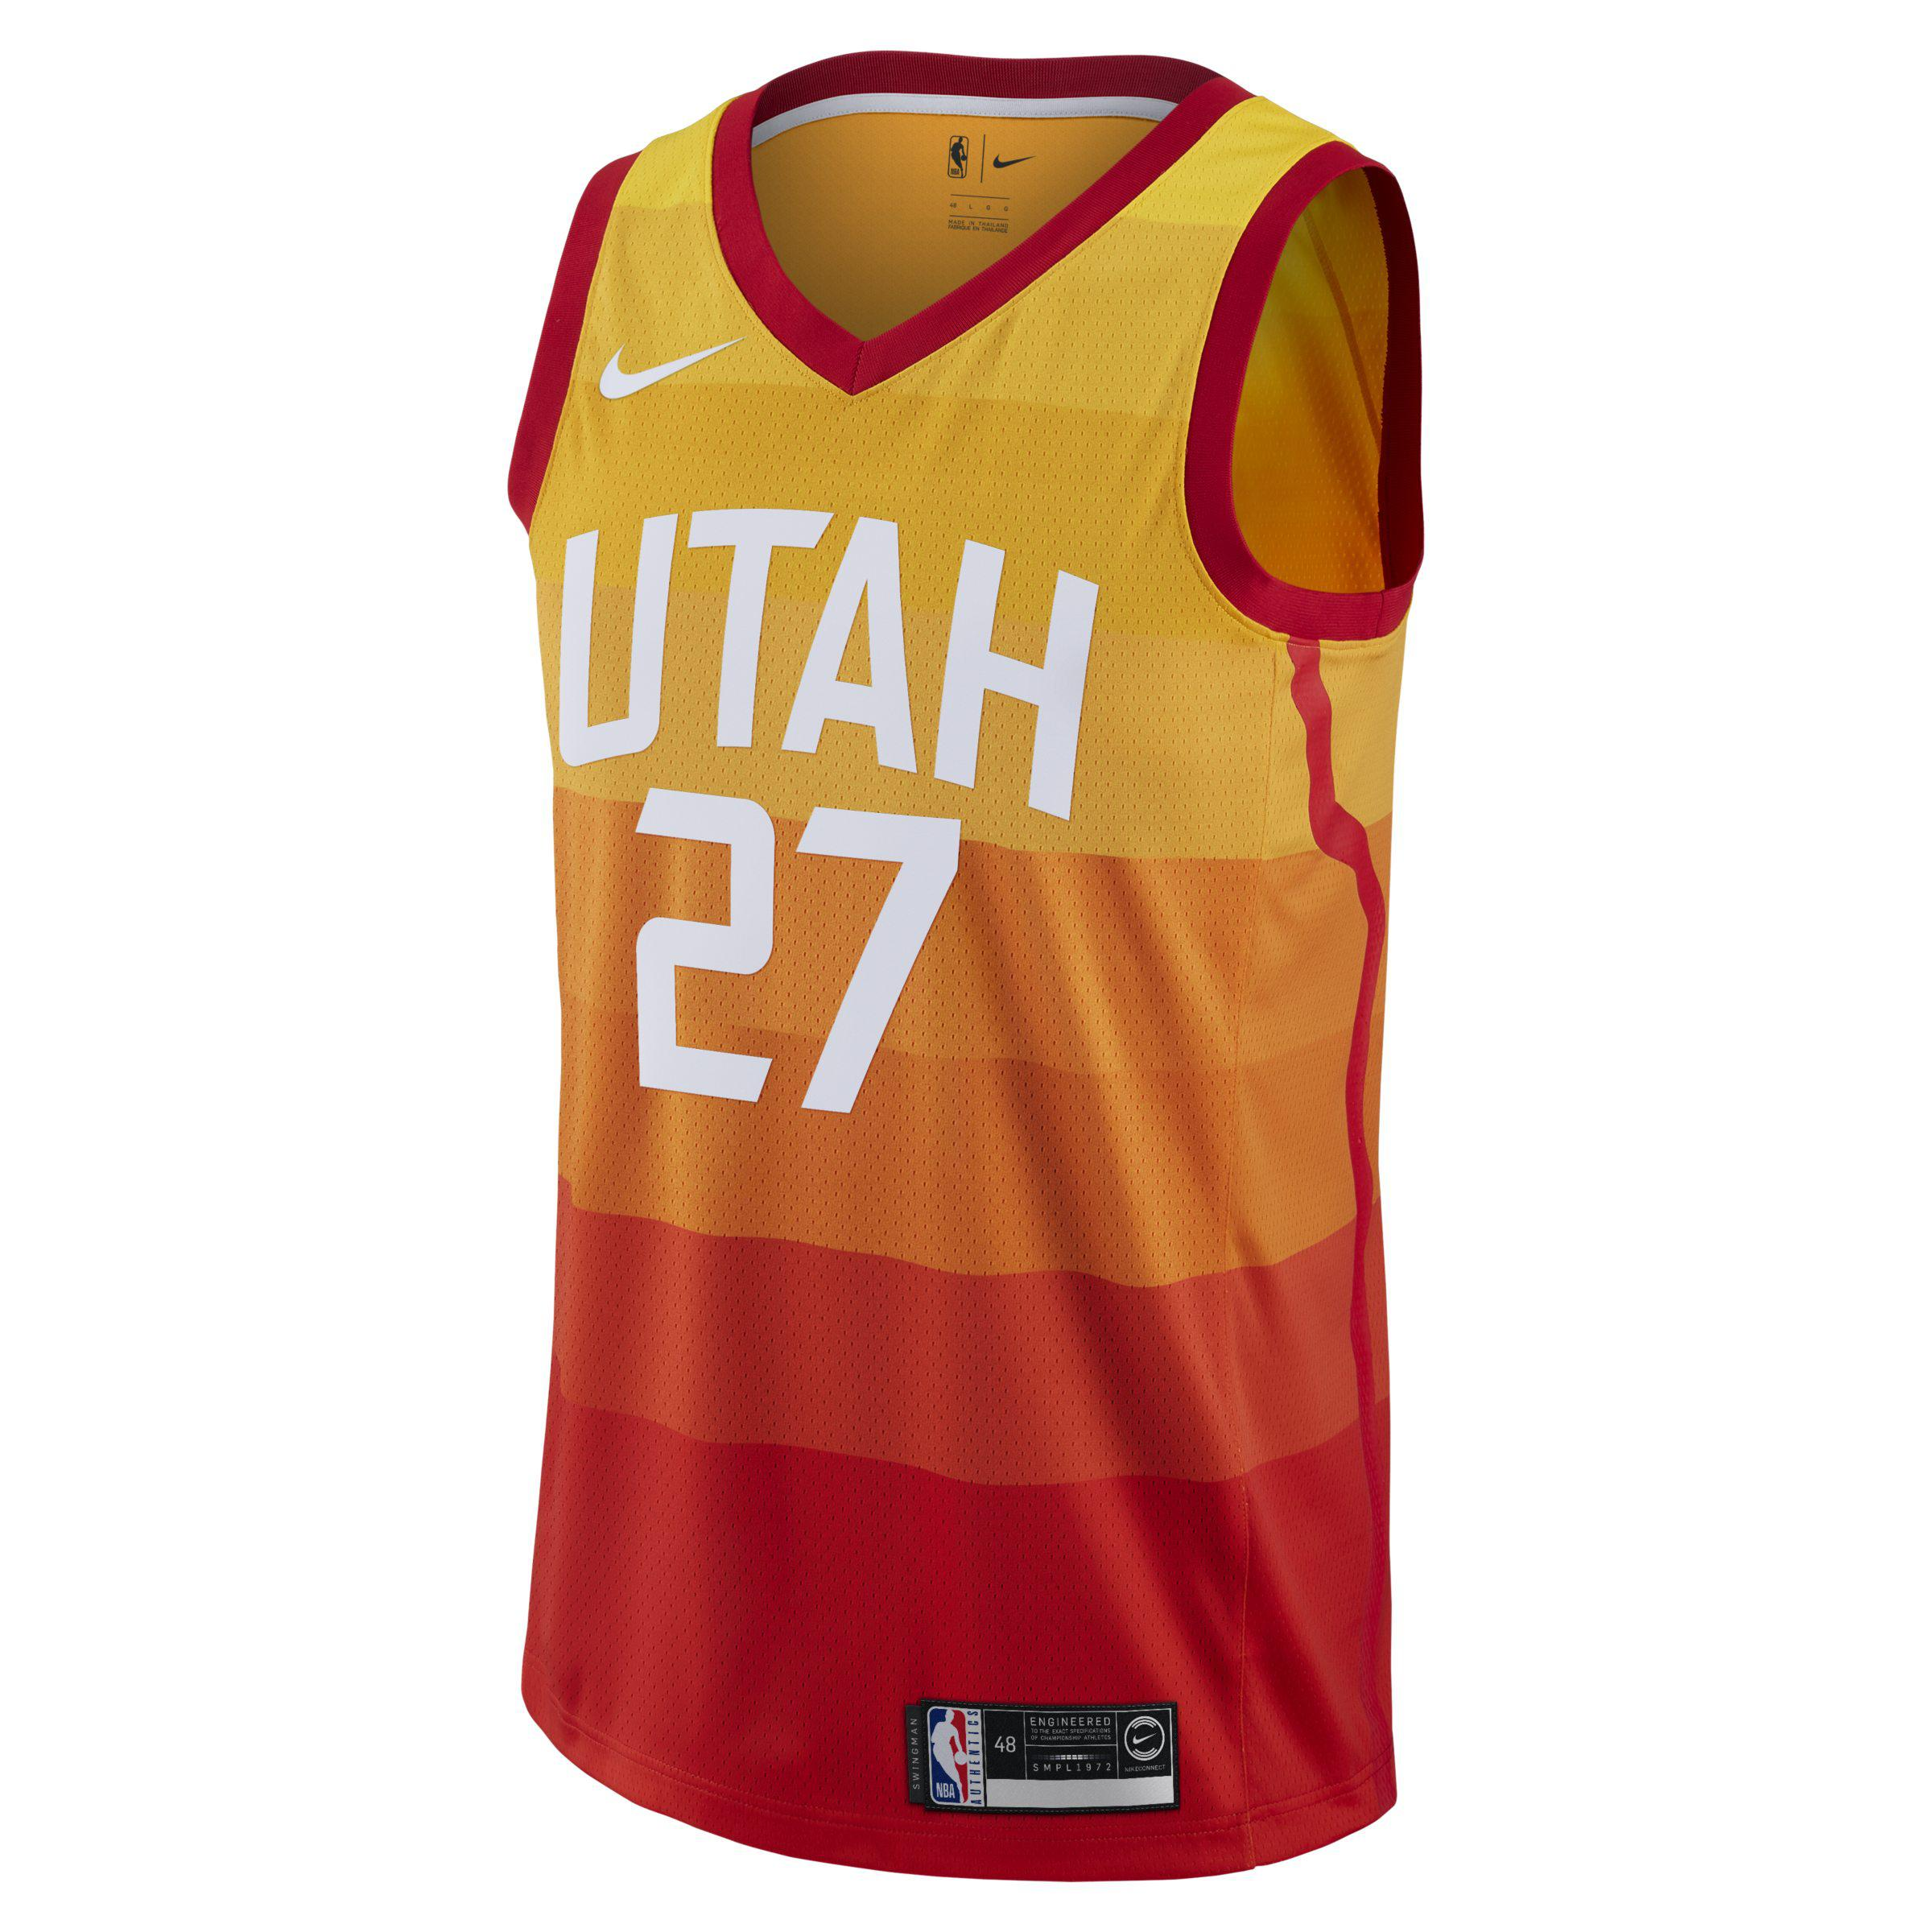 detailing 8149d 032ea Nike Rudy Gobert City Edition Swingman (utah Jazz) Nba ...